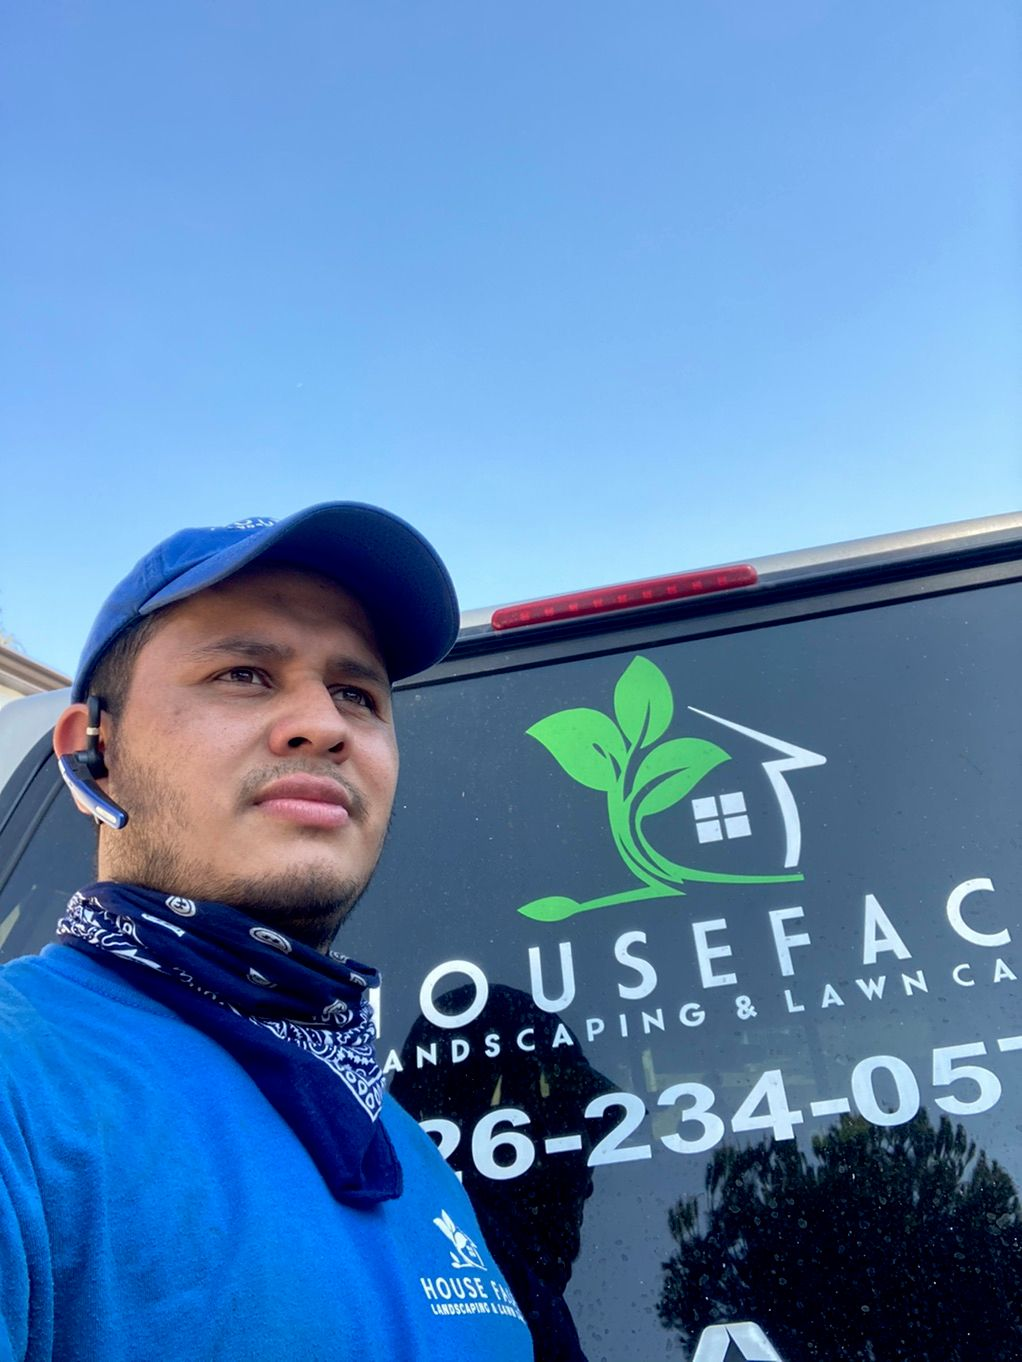 HouseFace Landscaping & Lawn Care